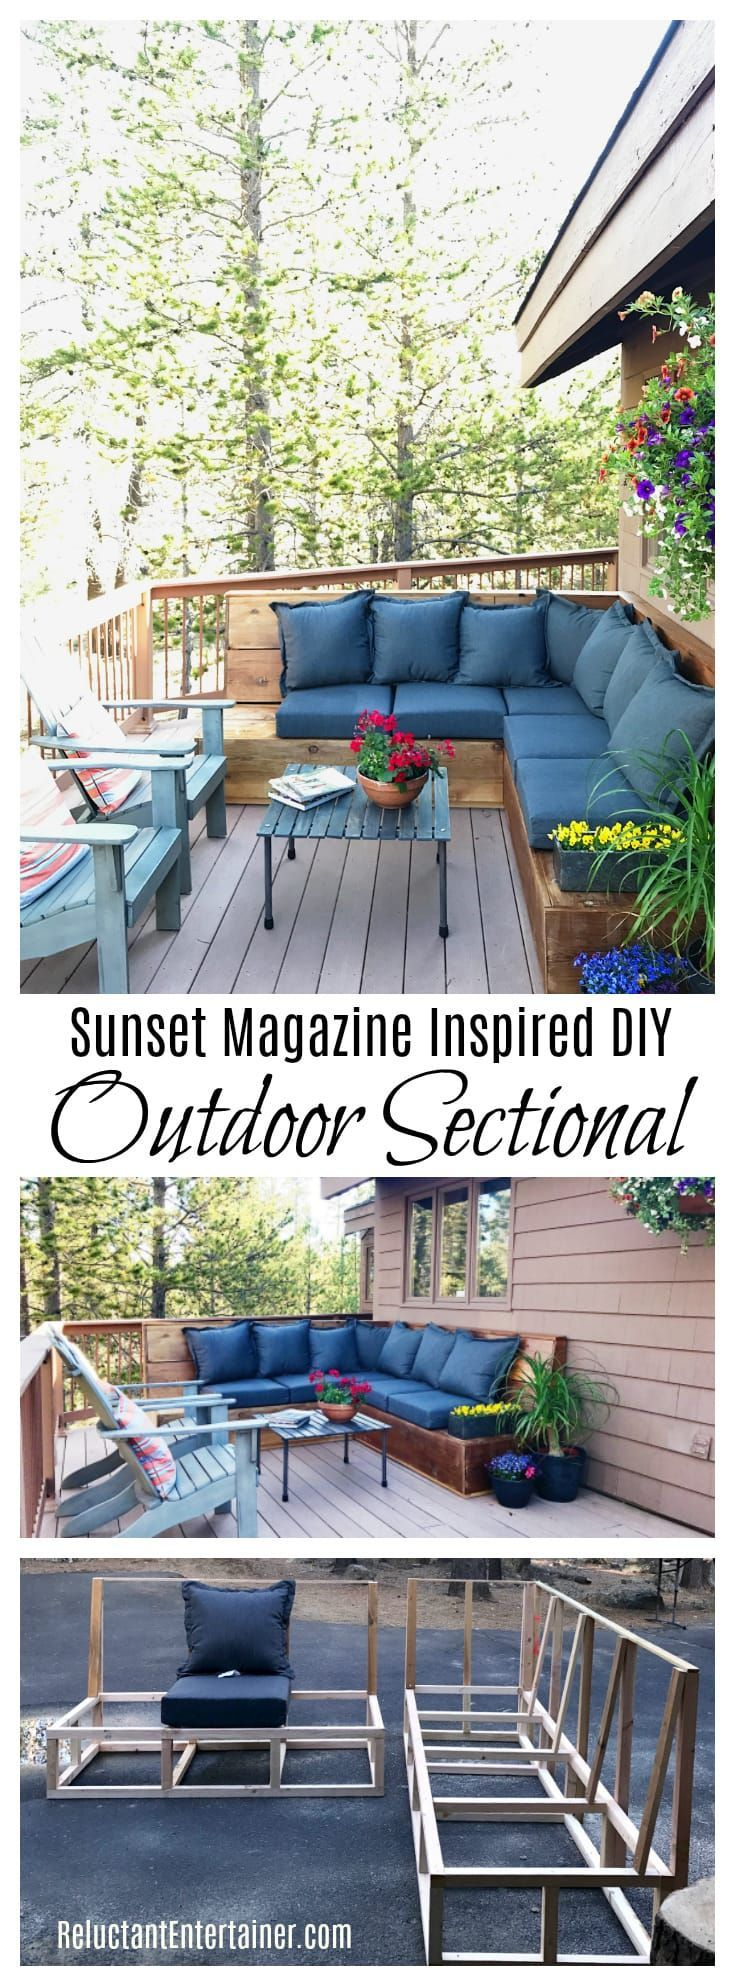 Sunset Magazine Inspired DIY Outdoor Sectional Home in